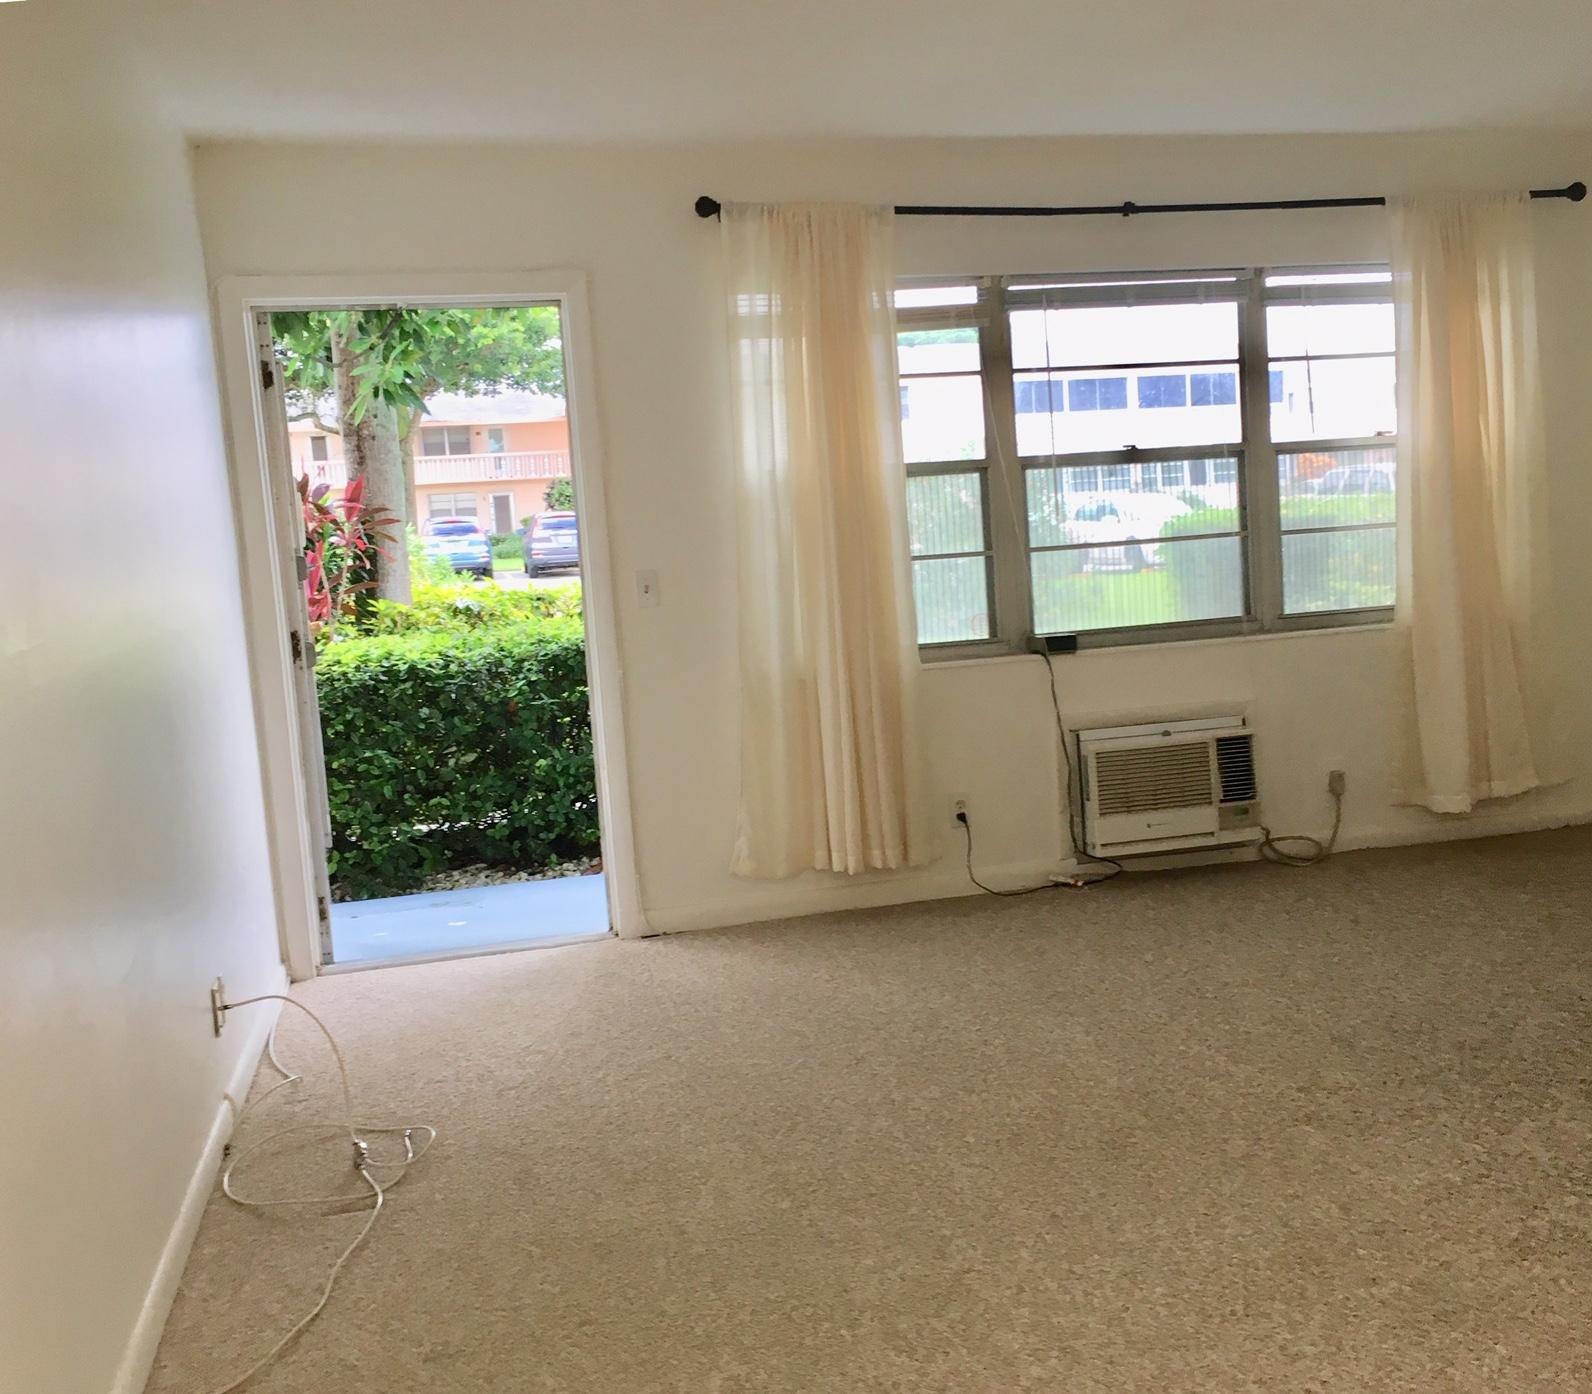 123 Sheffield F, West Palm Beach, Florida 33417, 1 Bedroom Bedrooms, ,1 BathroomBathrooms,Condo/Coop,For Rent,Sheffield F,1,RX-10558145